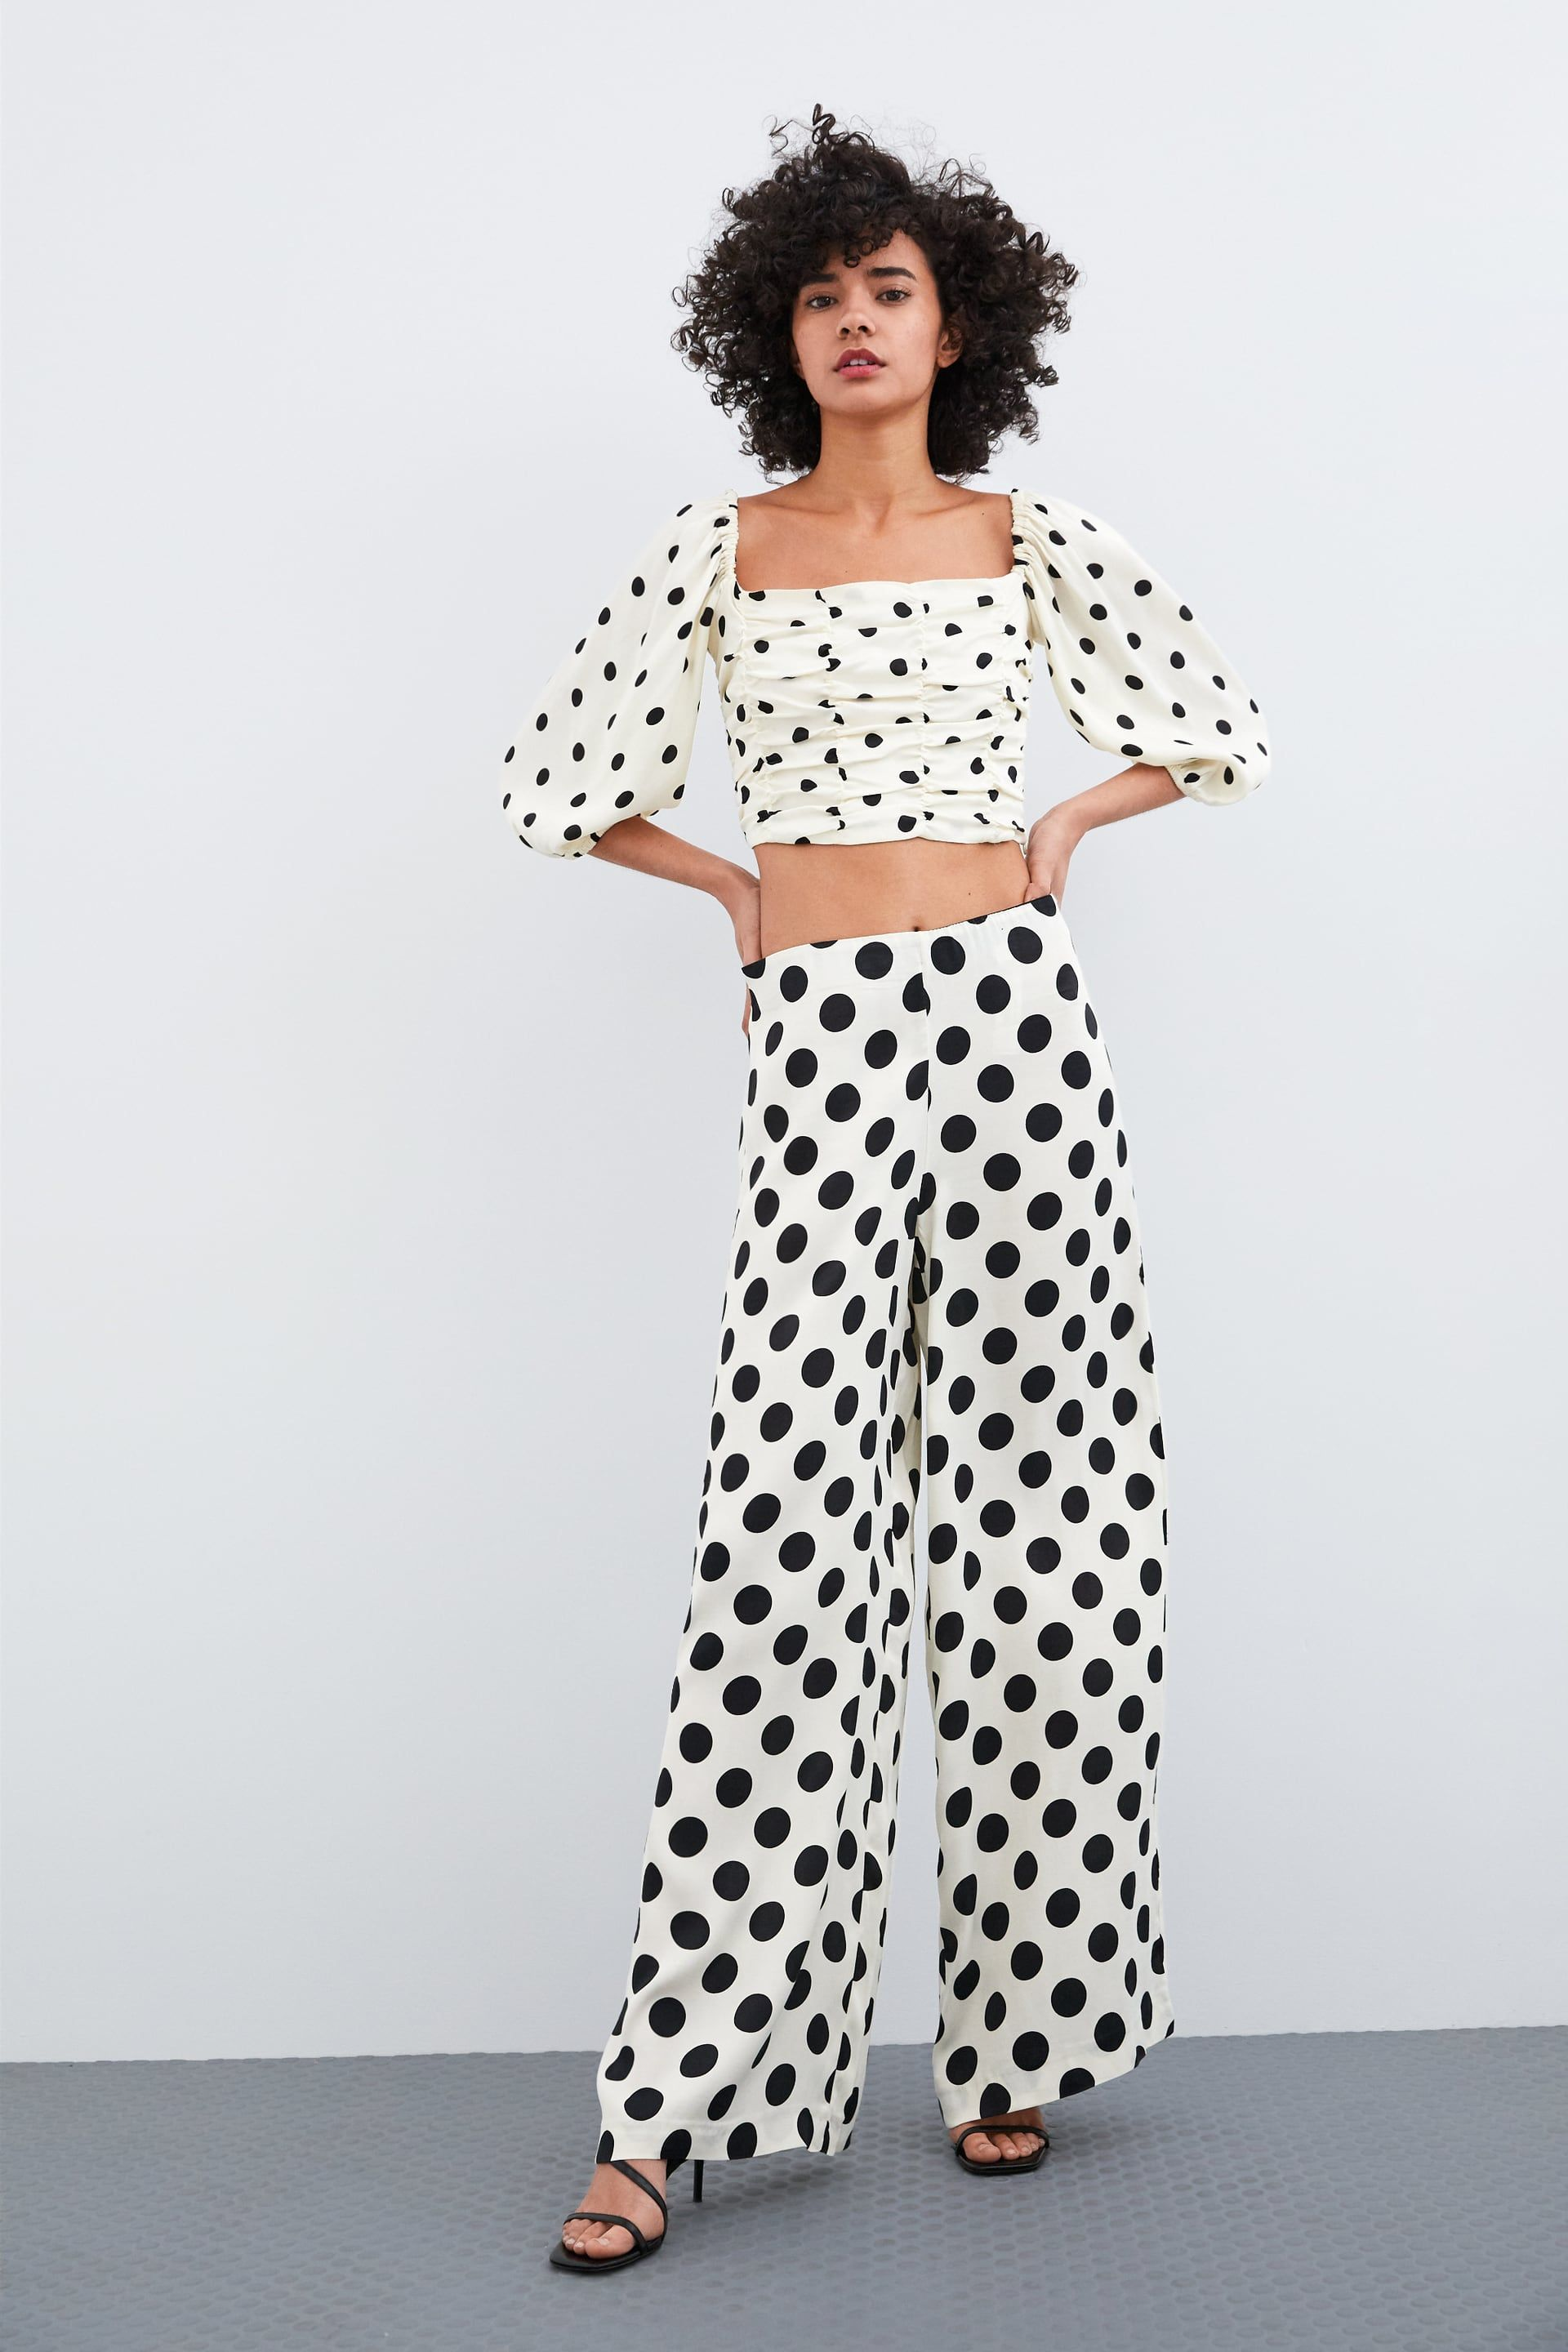 42d3cda1ce Cropped polka dot top in 2019 | Style Inspirations | Polka dot crop ...